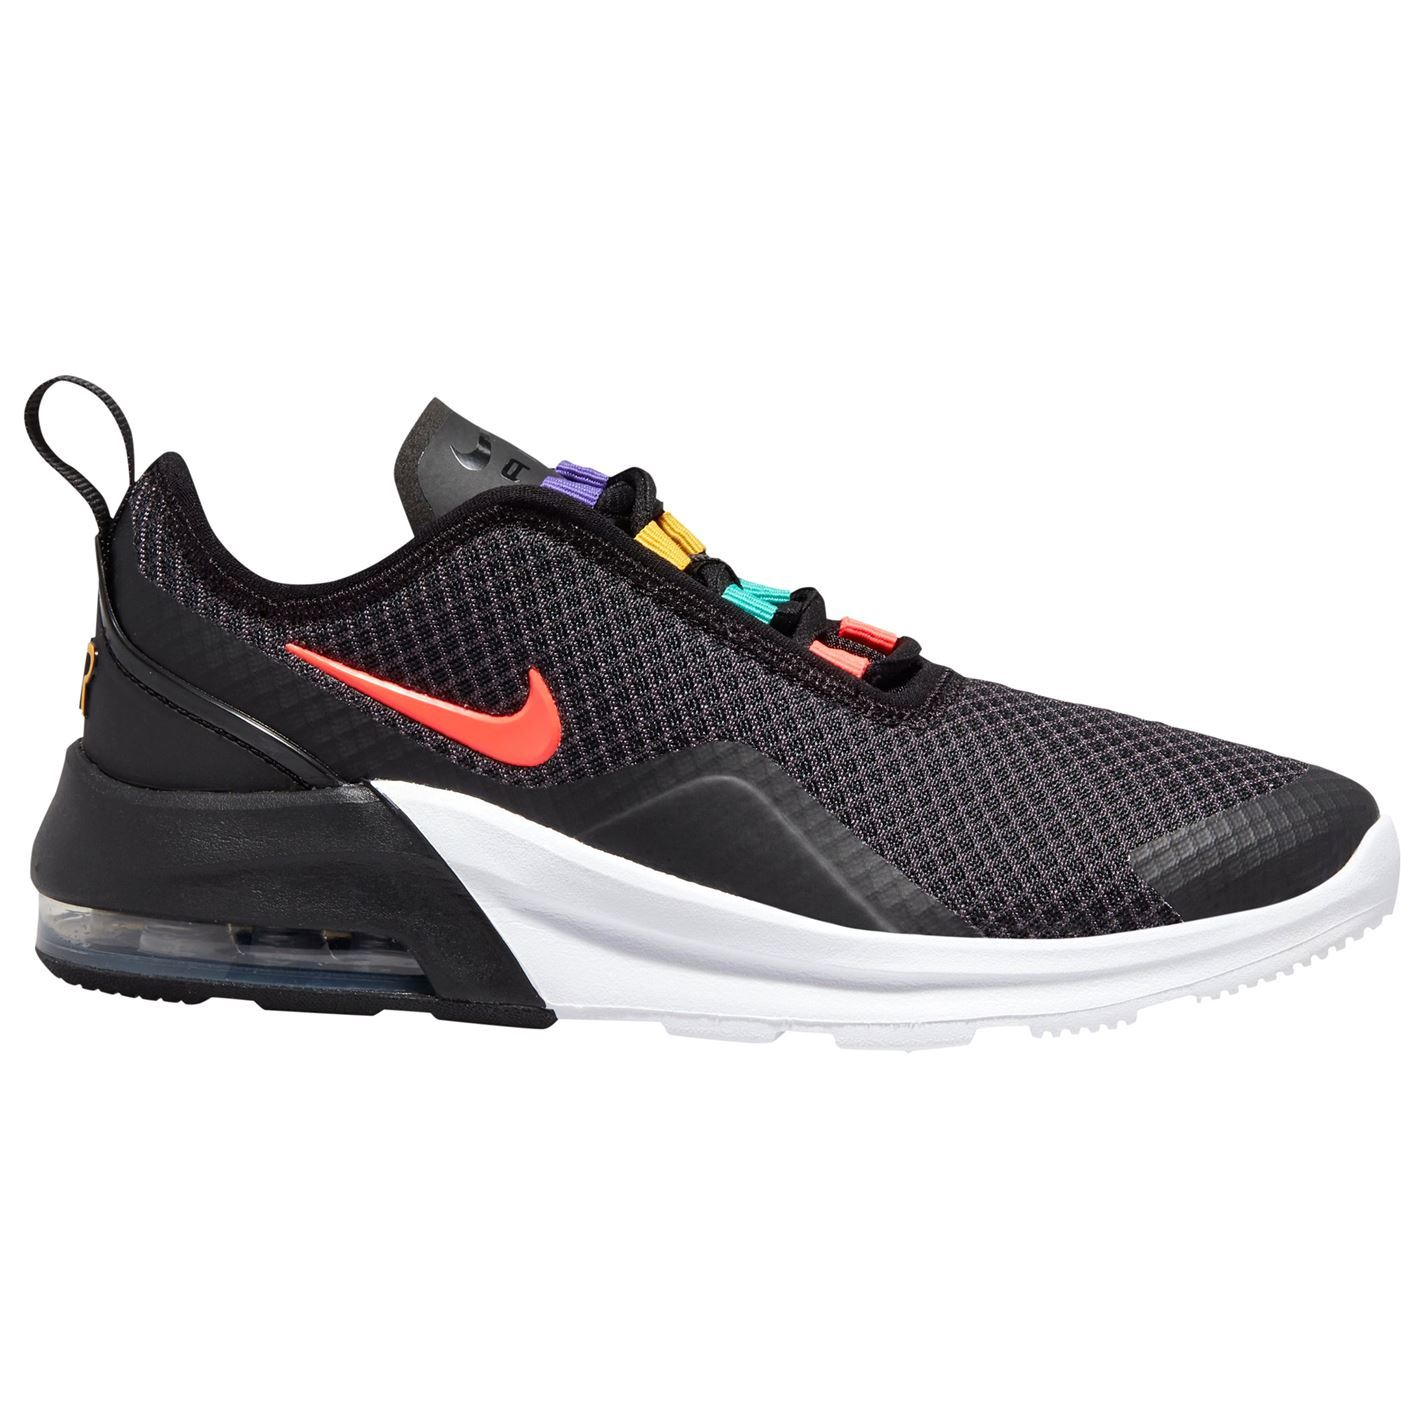 Details about Nike Air Max Motion 2 Trainers Junior Boys Shoes Kids Sneakers Shoes show original title